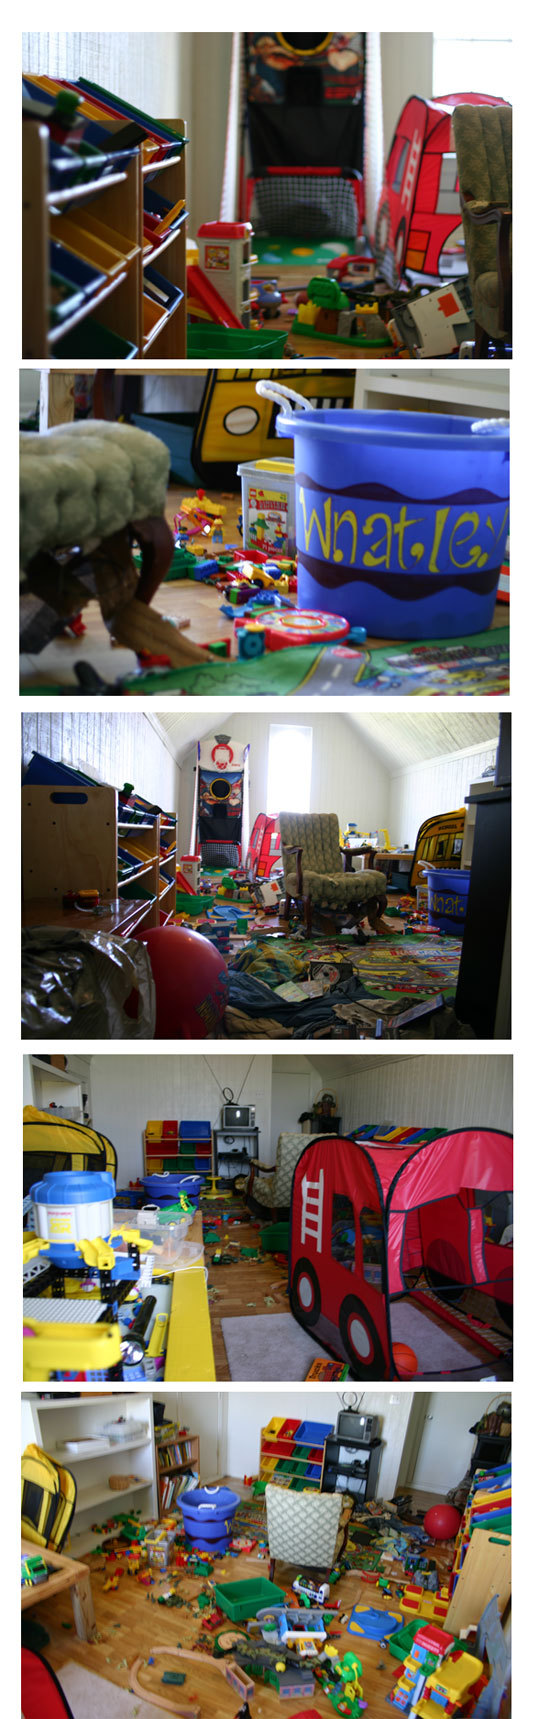 Playroombefore_2